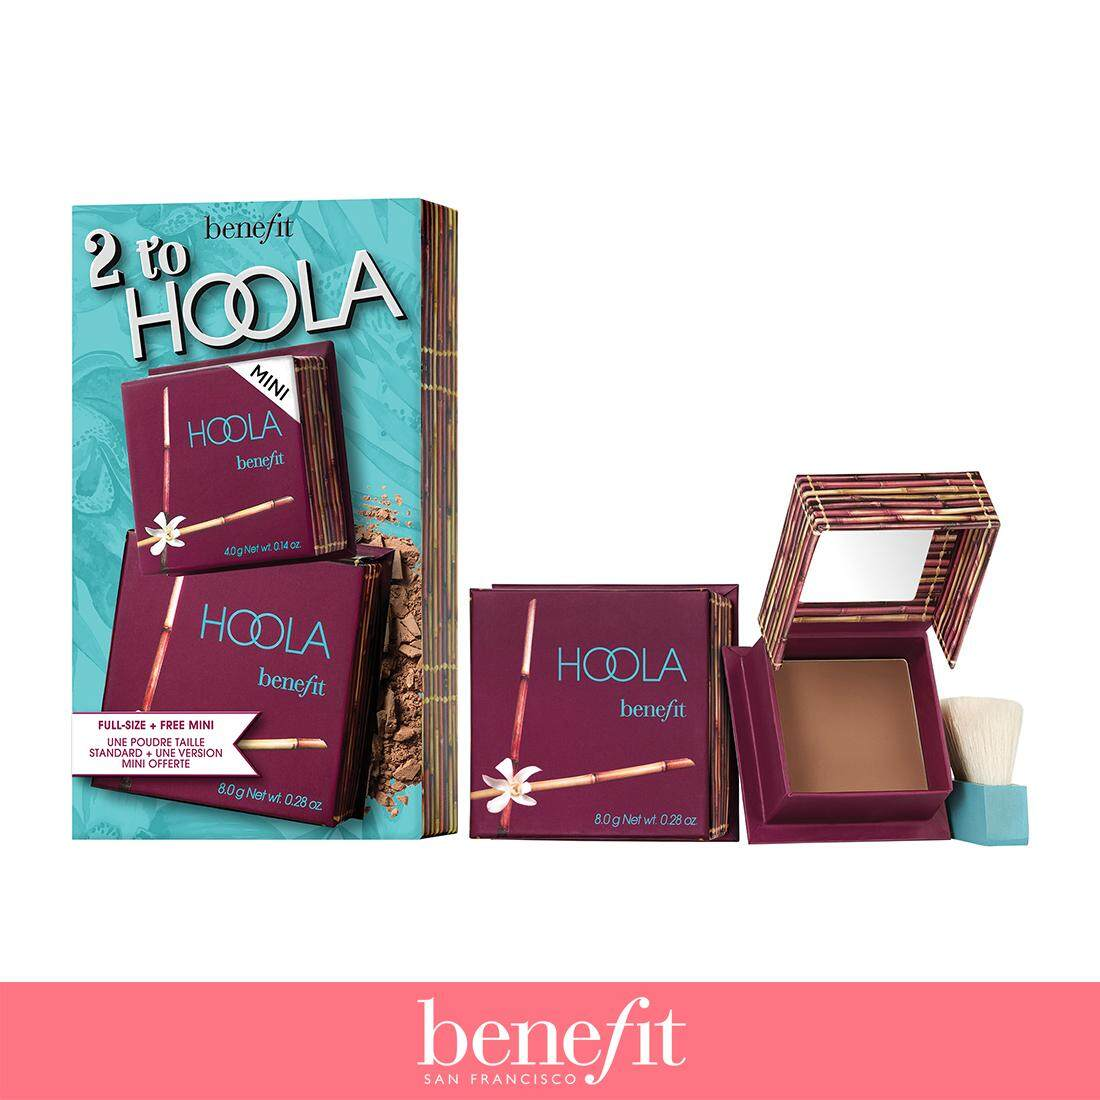 Benefit 2 To Hoola Matte Powder Bronzer Duo Worth Rm242 By Benefit Official Store.